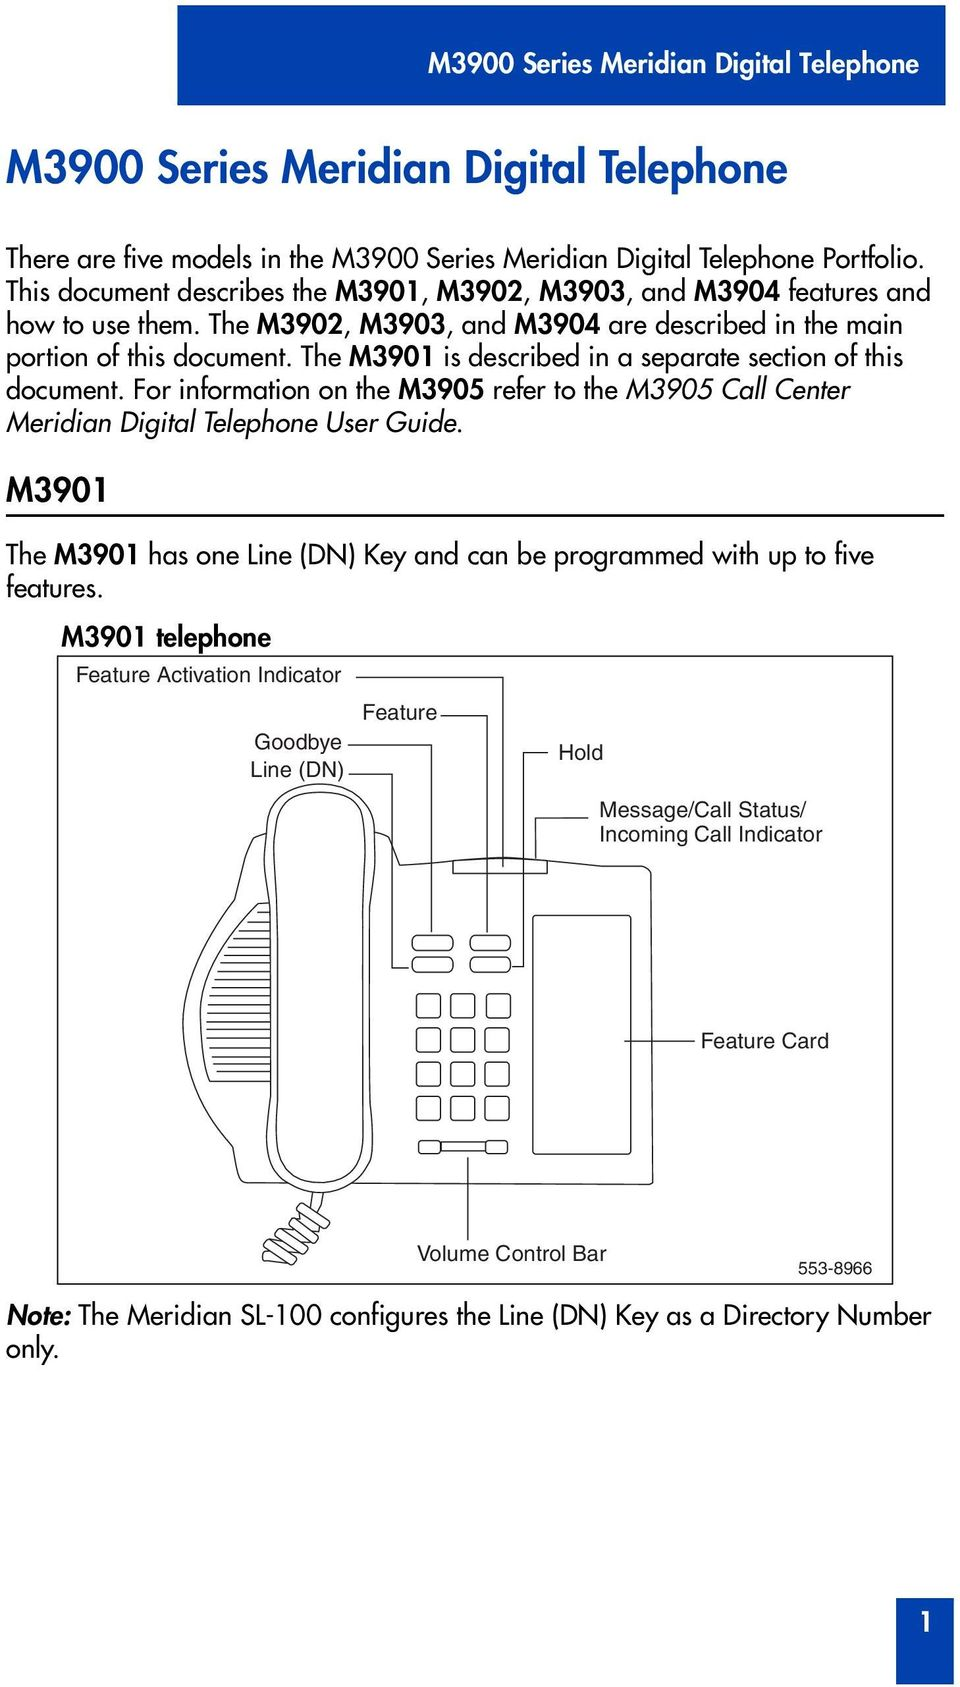 The M3901 is described in a separate section of this document. F infmation on the M3905 refer to the M3905 Call Center Meridian Digital Telephone User Guide.